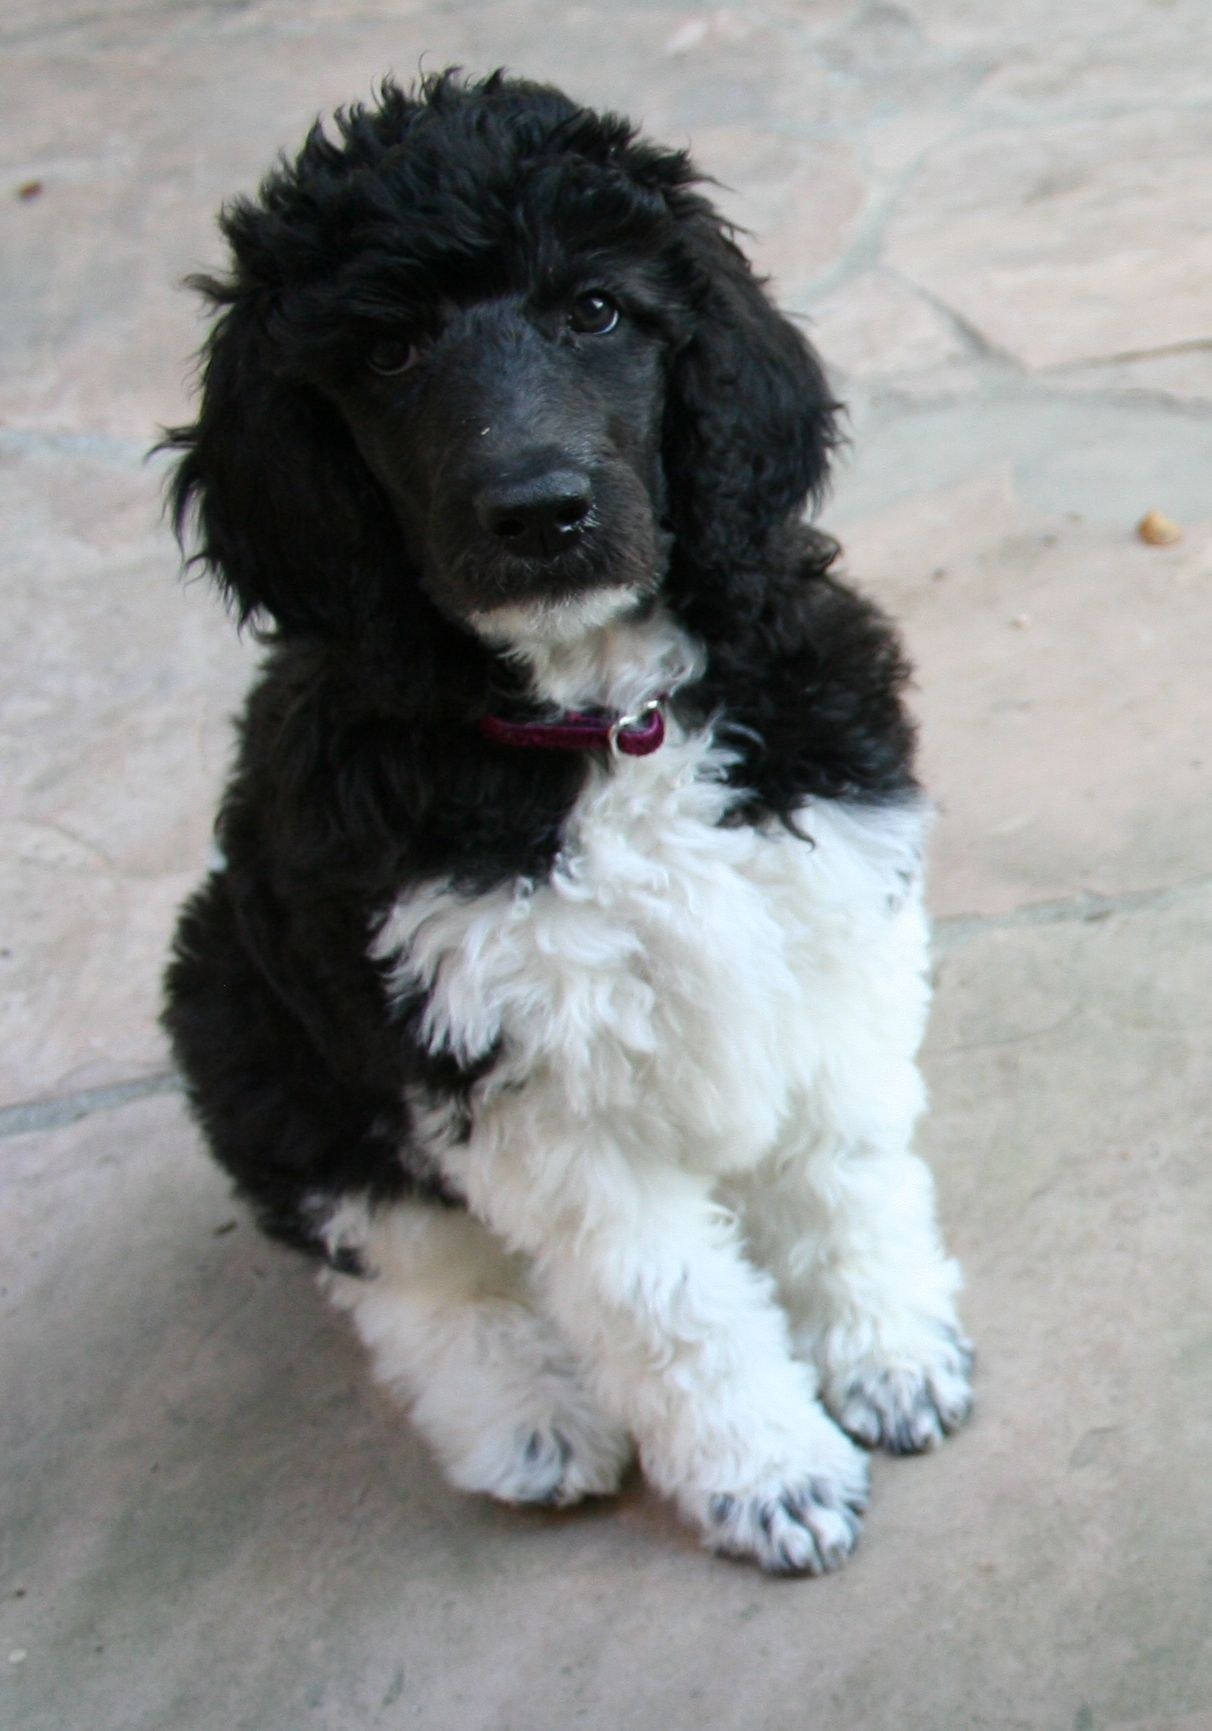 Sweet Poodle Puppy Waiting For Her Treat 3 Puppy Dog Dogs Puppies